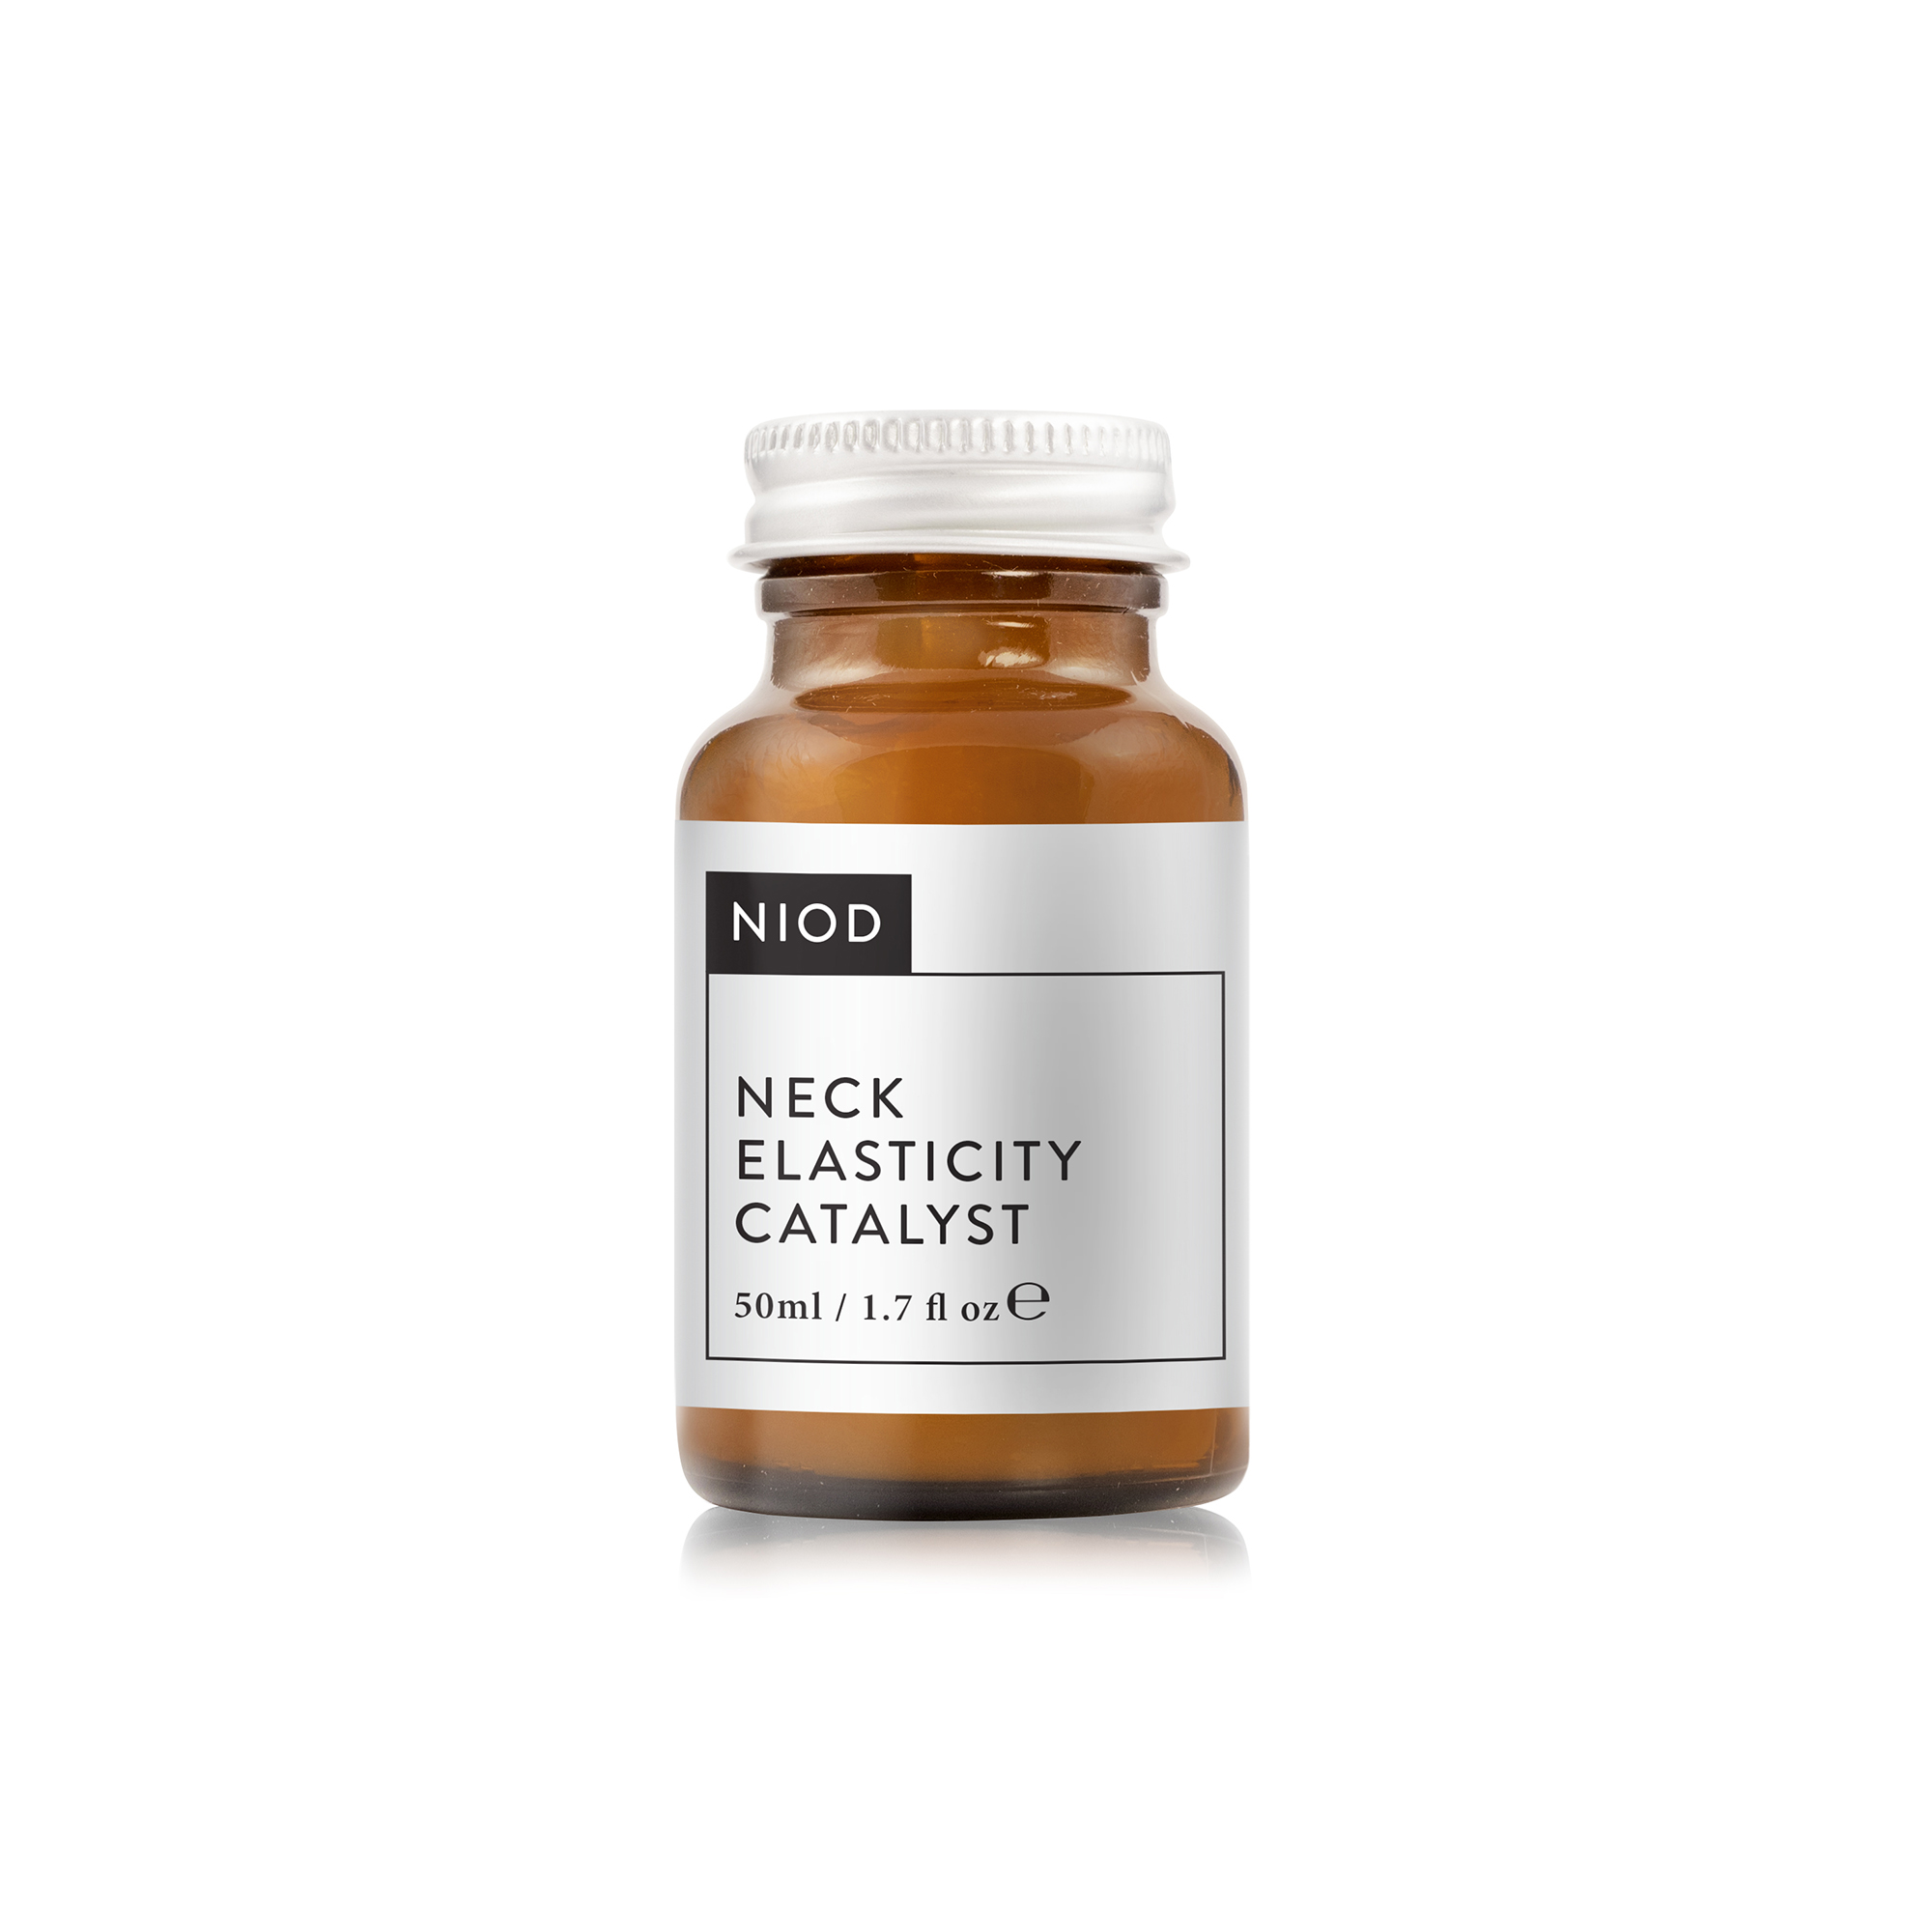 NIOD_Neck_Elasticity_Catalyst_(NEC)_50ml